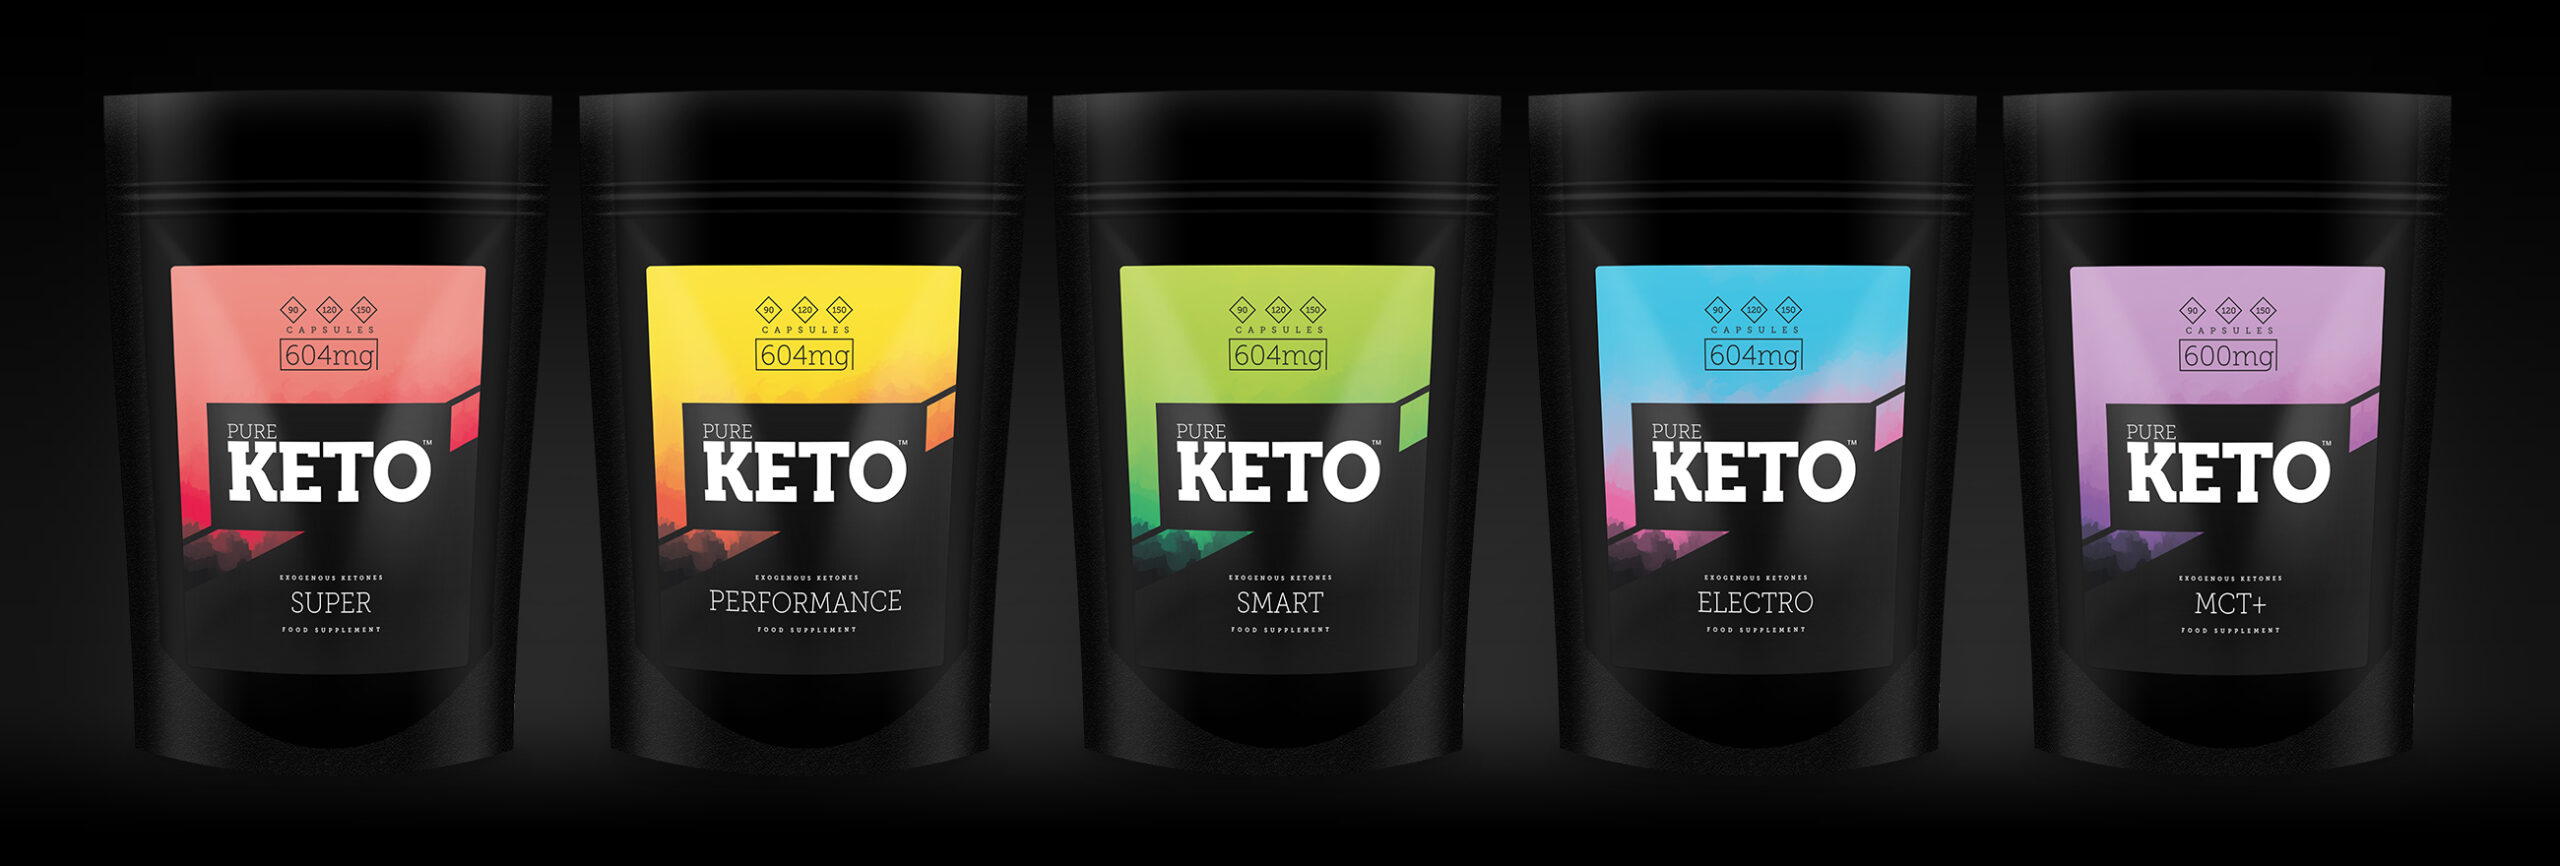 Exogenous Ketones UK - Pure Keto Line up of products